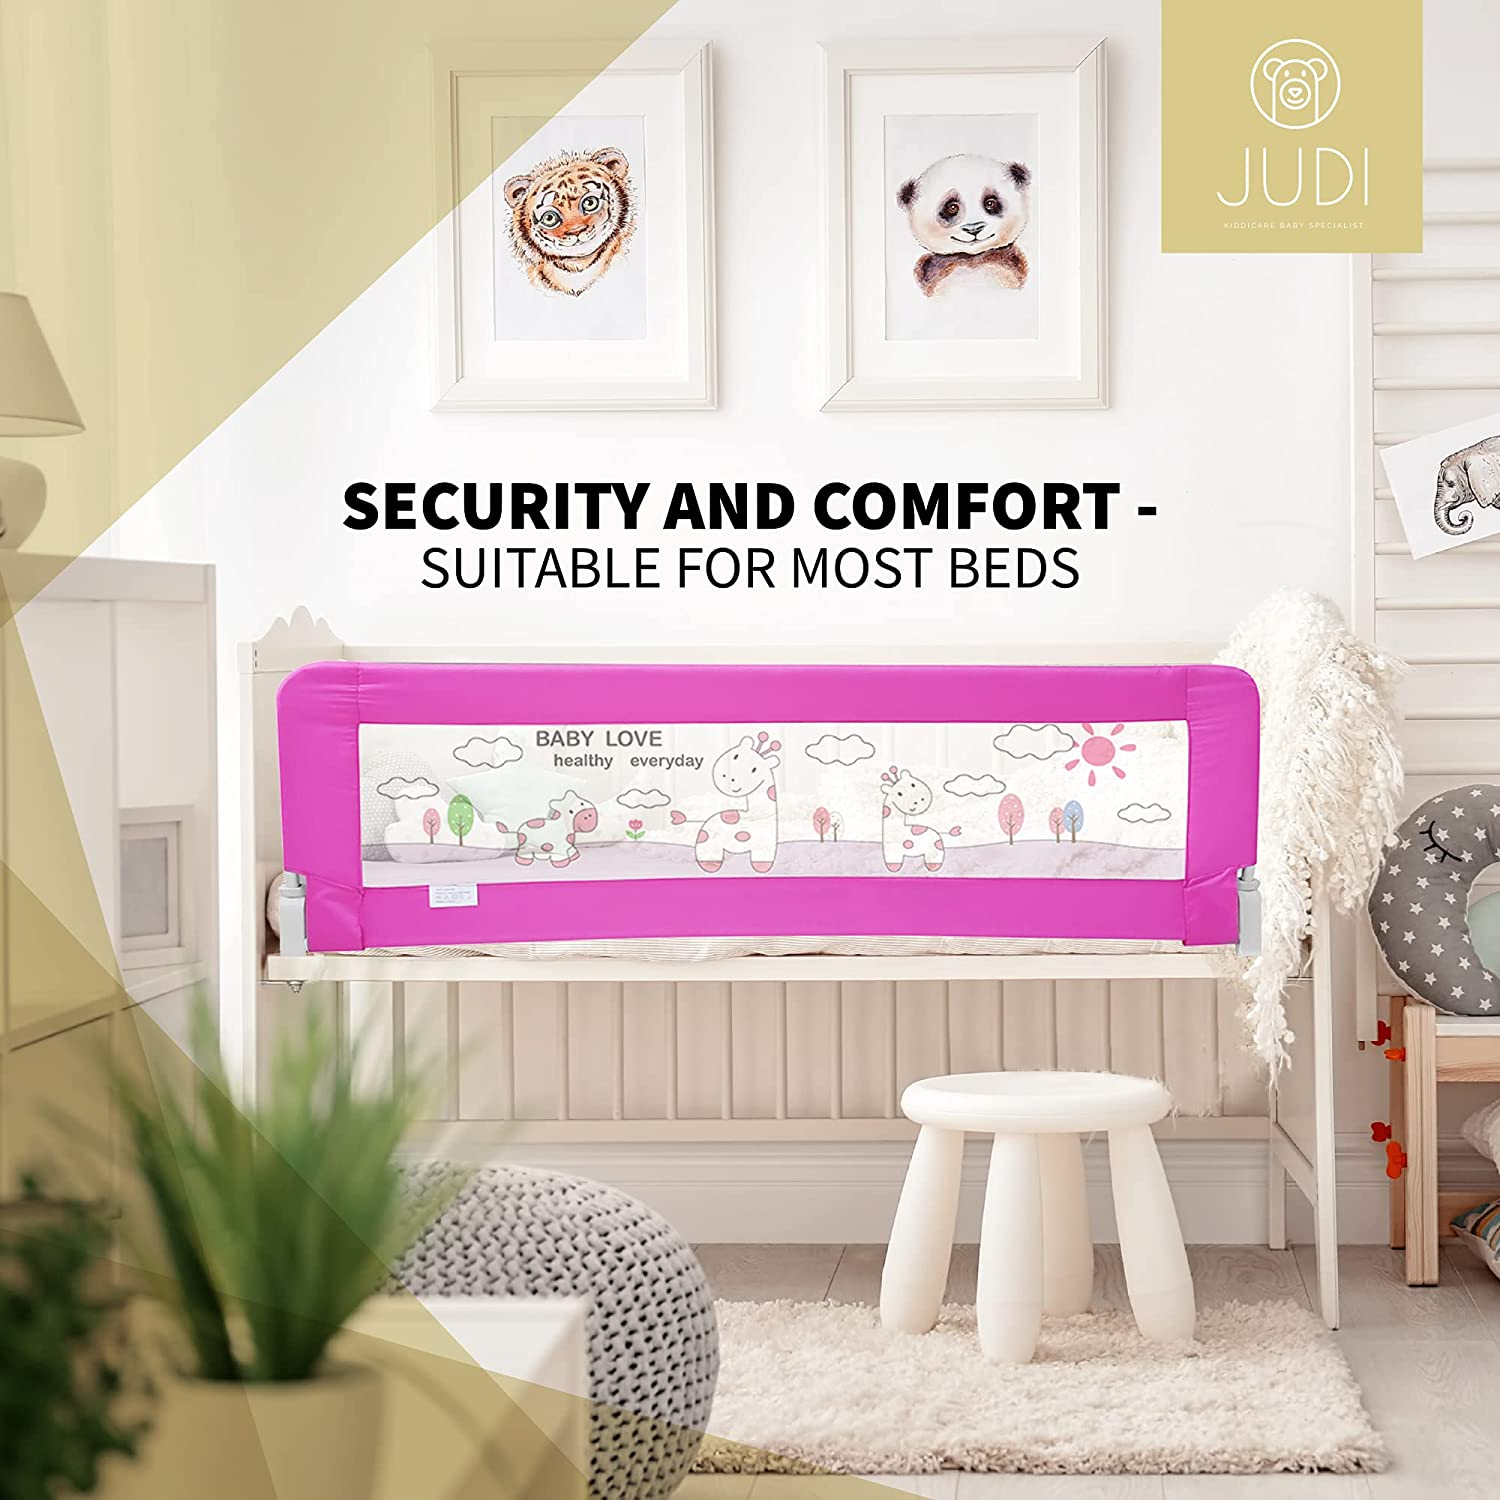 JUDI Toddler Bed Rail Guard for Safety - Foldable Stainless-Steel Frame with Cute Image Printed on Breathable Mesh - Easy to Install Suitable for Most Bed Sizes - 24.8x13.8 Inches (Pink)…